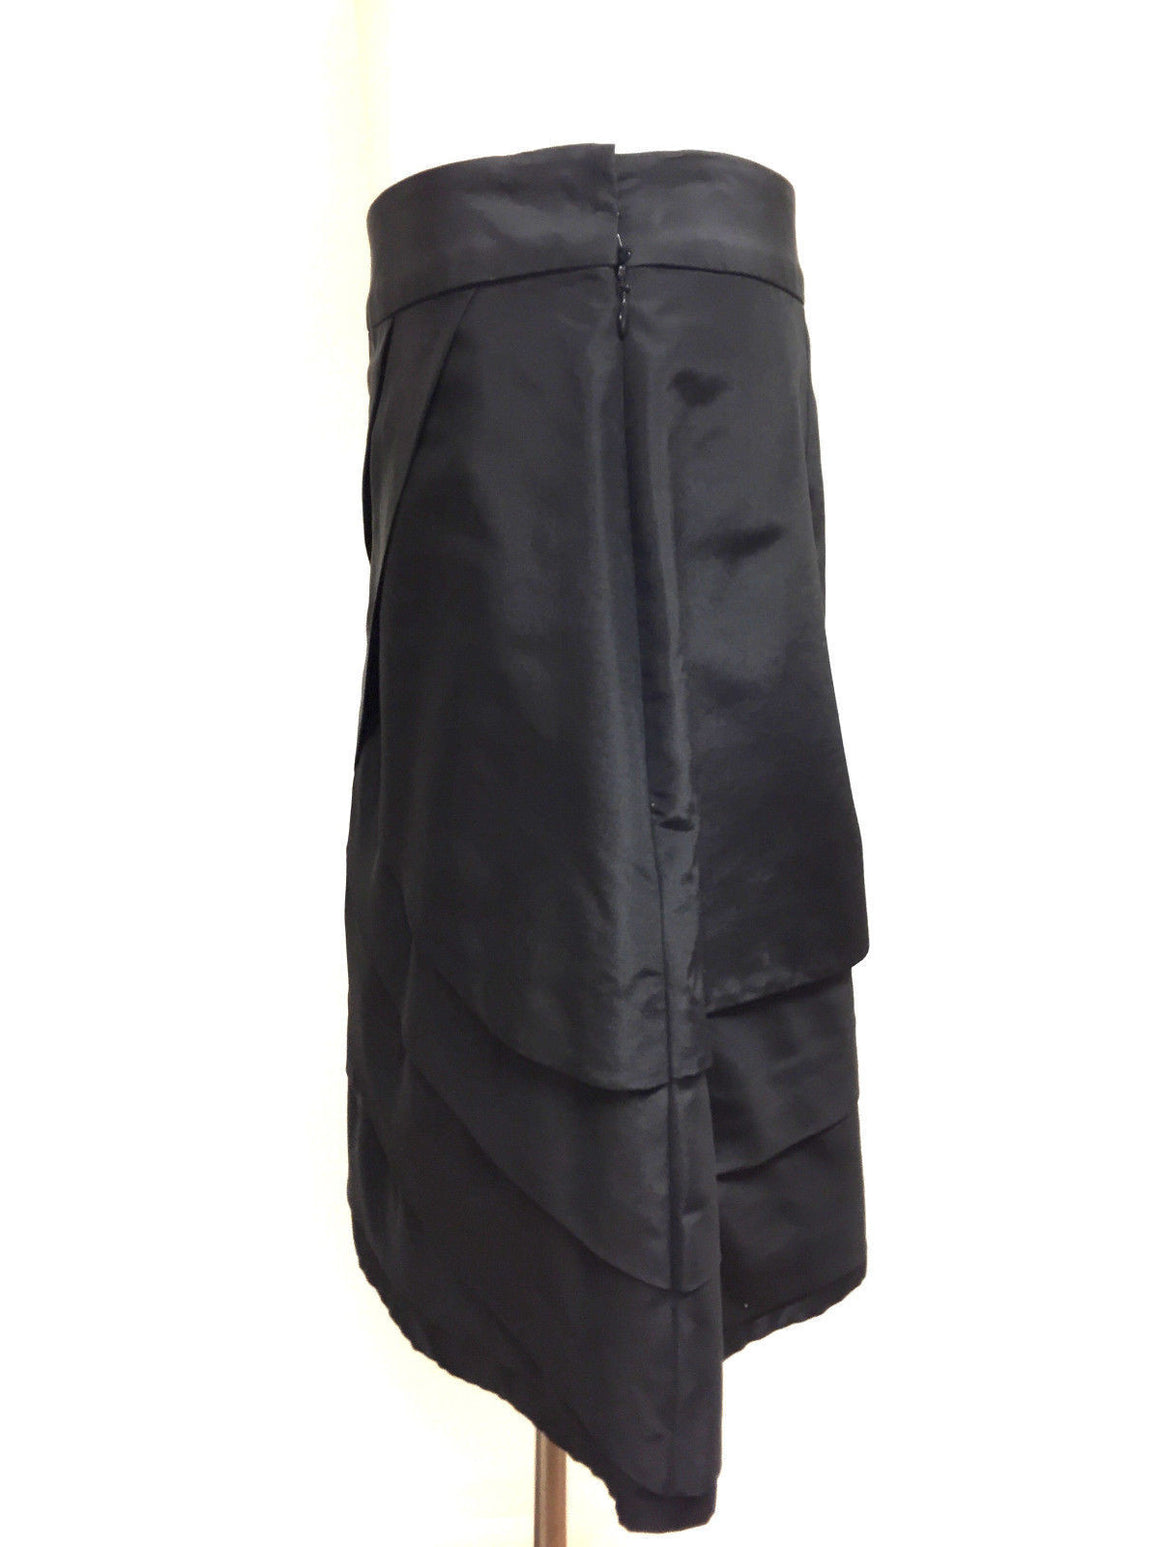 bisbiz.com LELA ROSE  Black Silk Taffeta Tiered Front A-Line Skirt  Size: 8 - Bis Luxury Resale